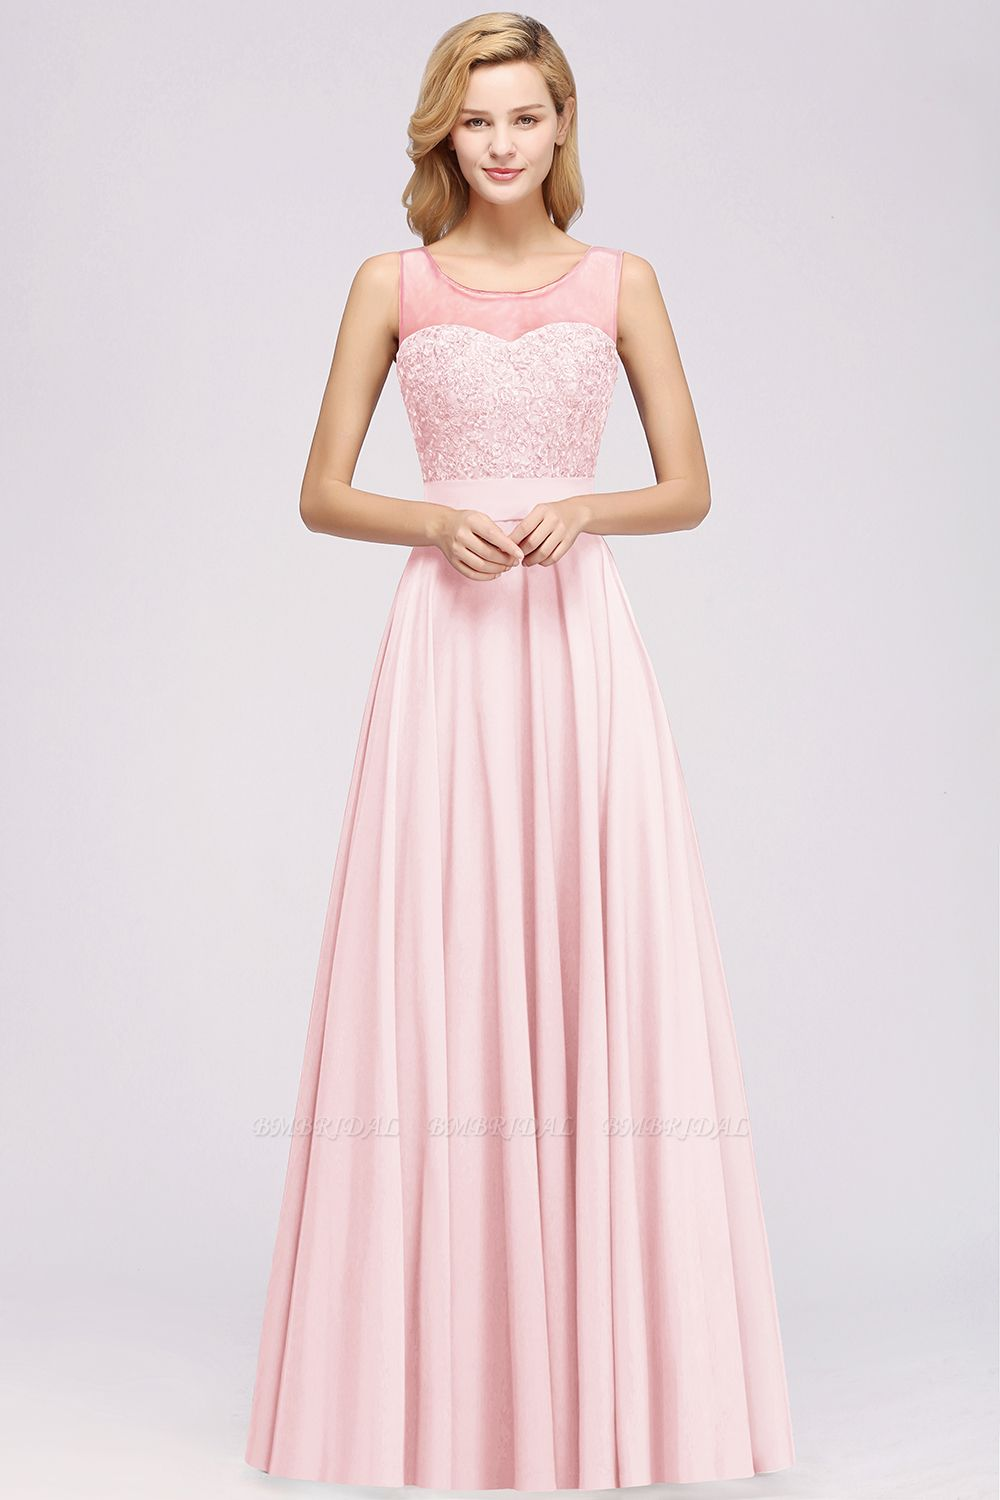 Gorgeous Lace Jewel Affordable Pink Bridesmaid Dress with Beadings